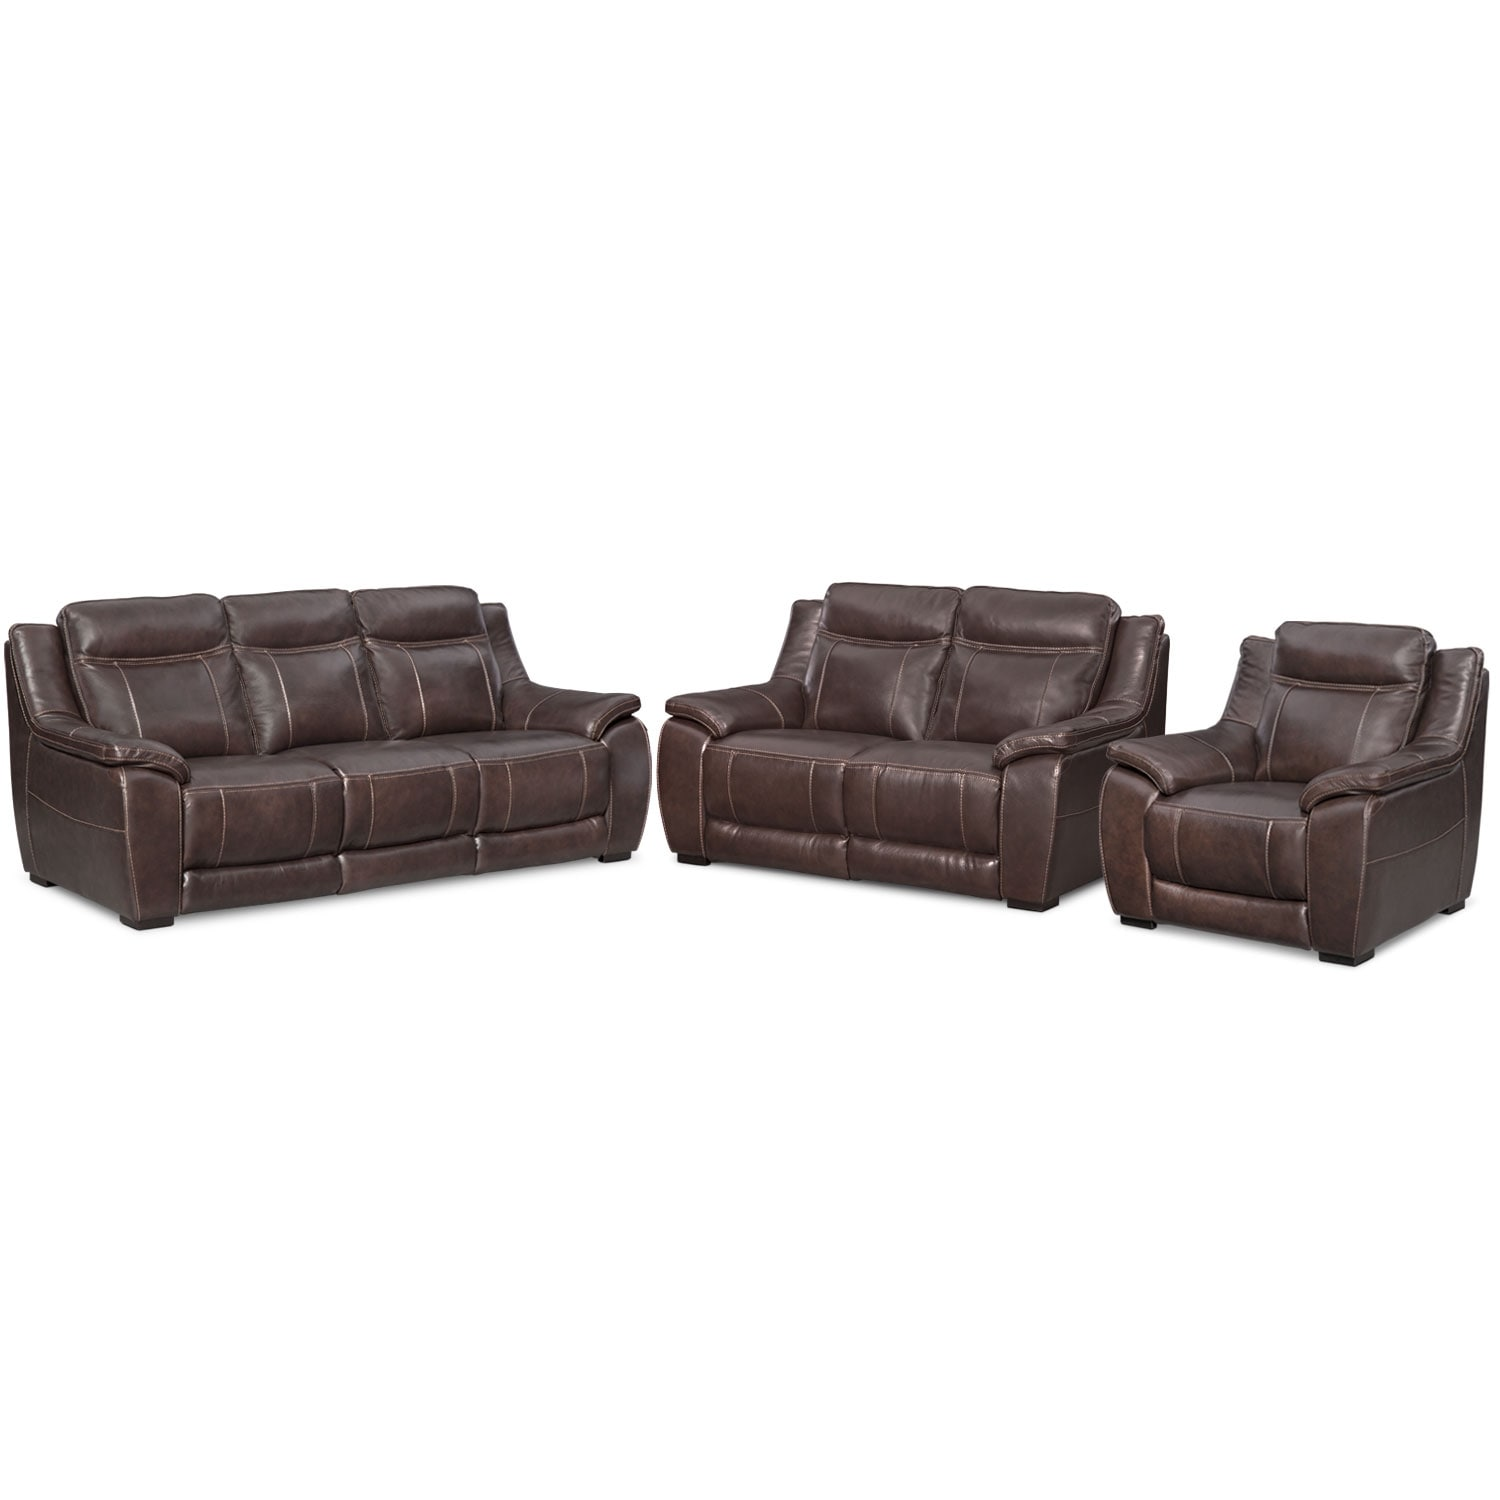 Lido Sofa, Loveseat and Chair Set - Brown